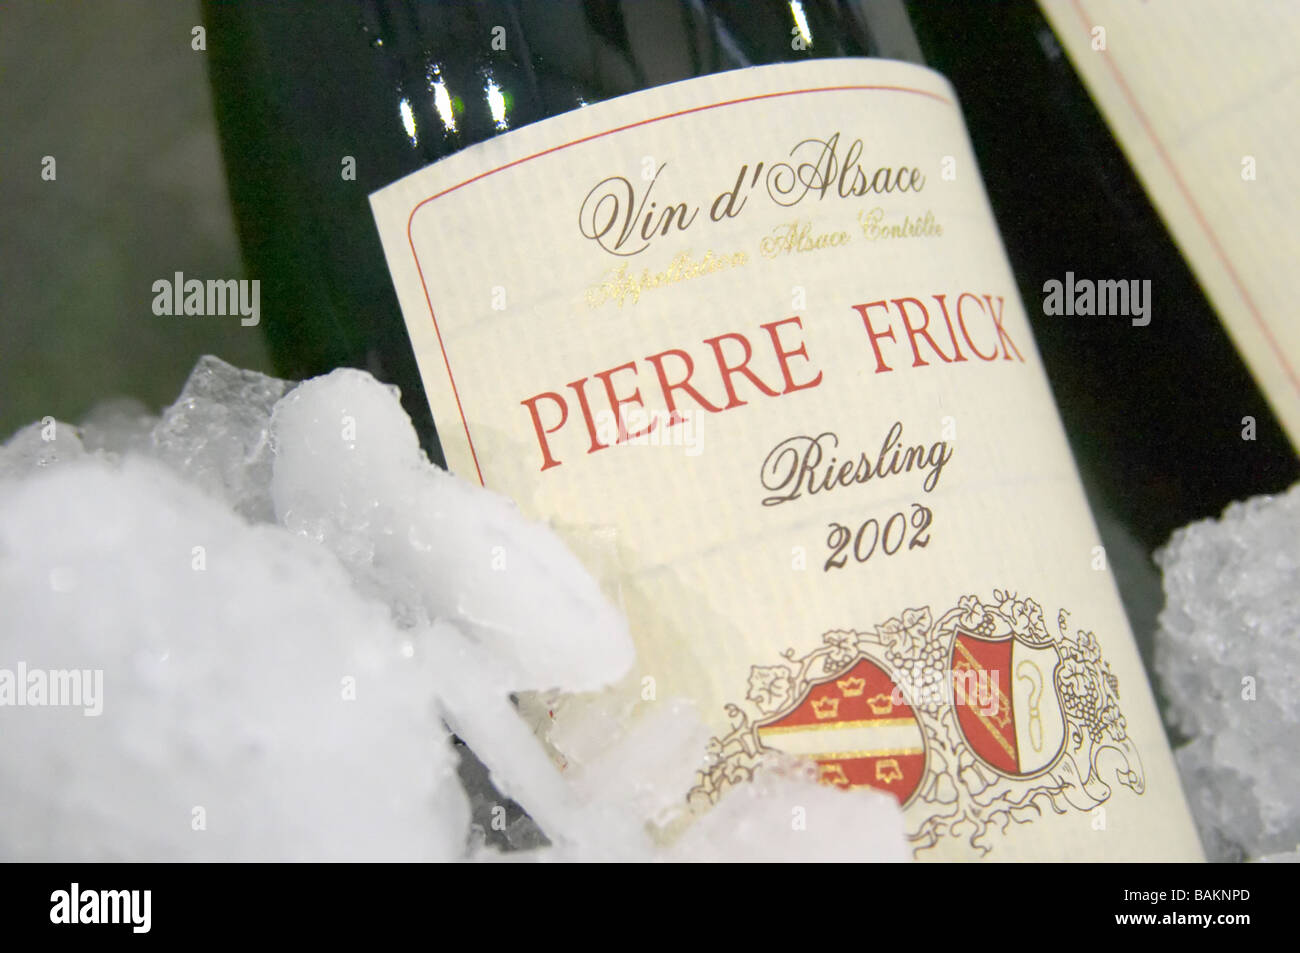 riesling 2002 domaine pierre frick pfaffenheim alsace france - Stock Image